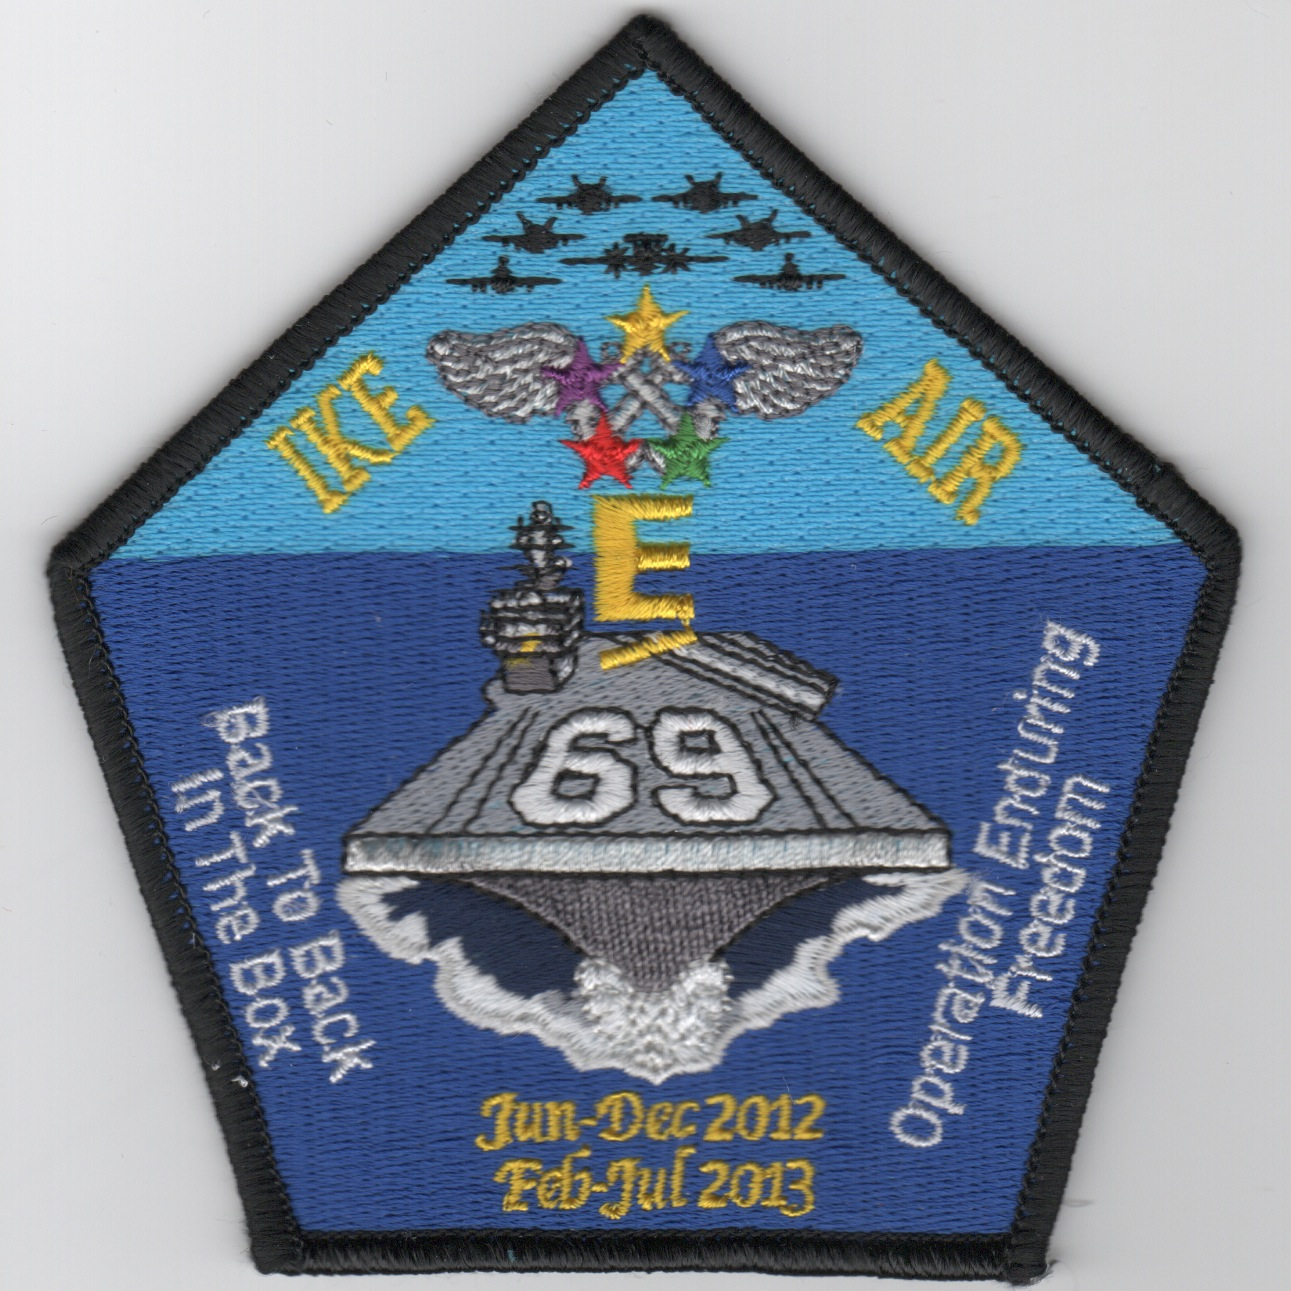 CVN-69 2012 'IKE AIR' Cruise Patch (Pentagon)